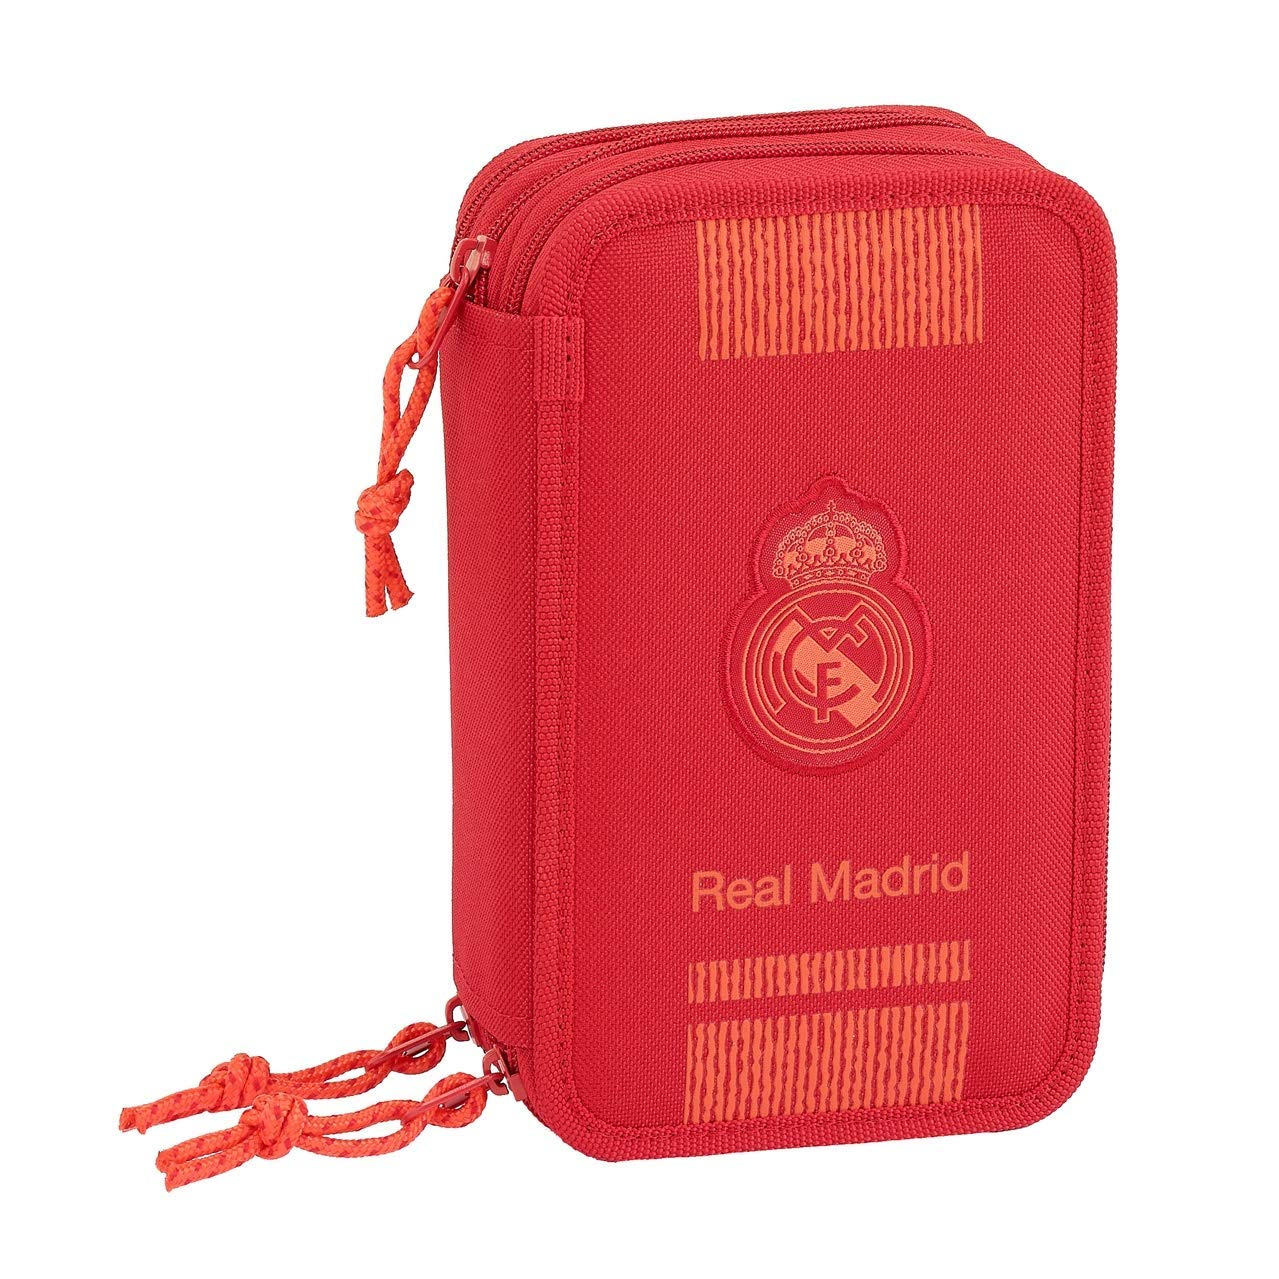 Real Madrid Estuches Unisex Adulto Plumier Triple 41 Piezas Red 3′ 3 equipacion 18/19 411957-057, Multicolor, Talla…